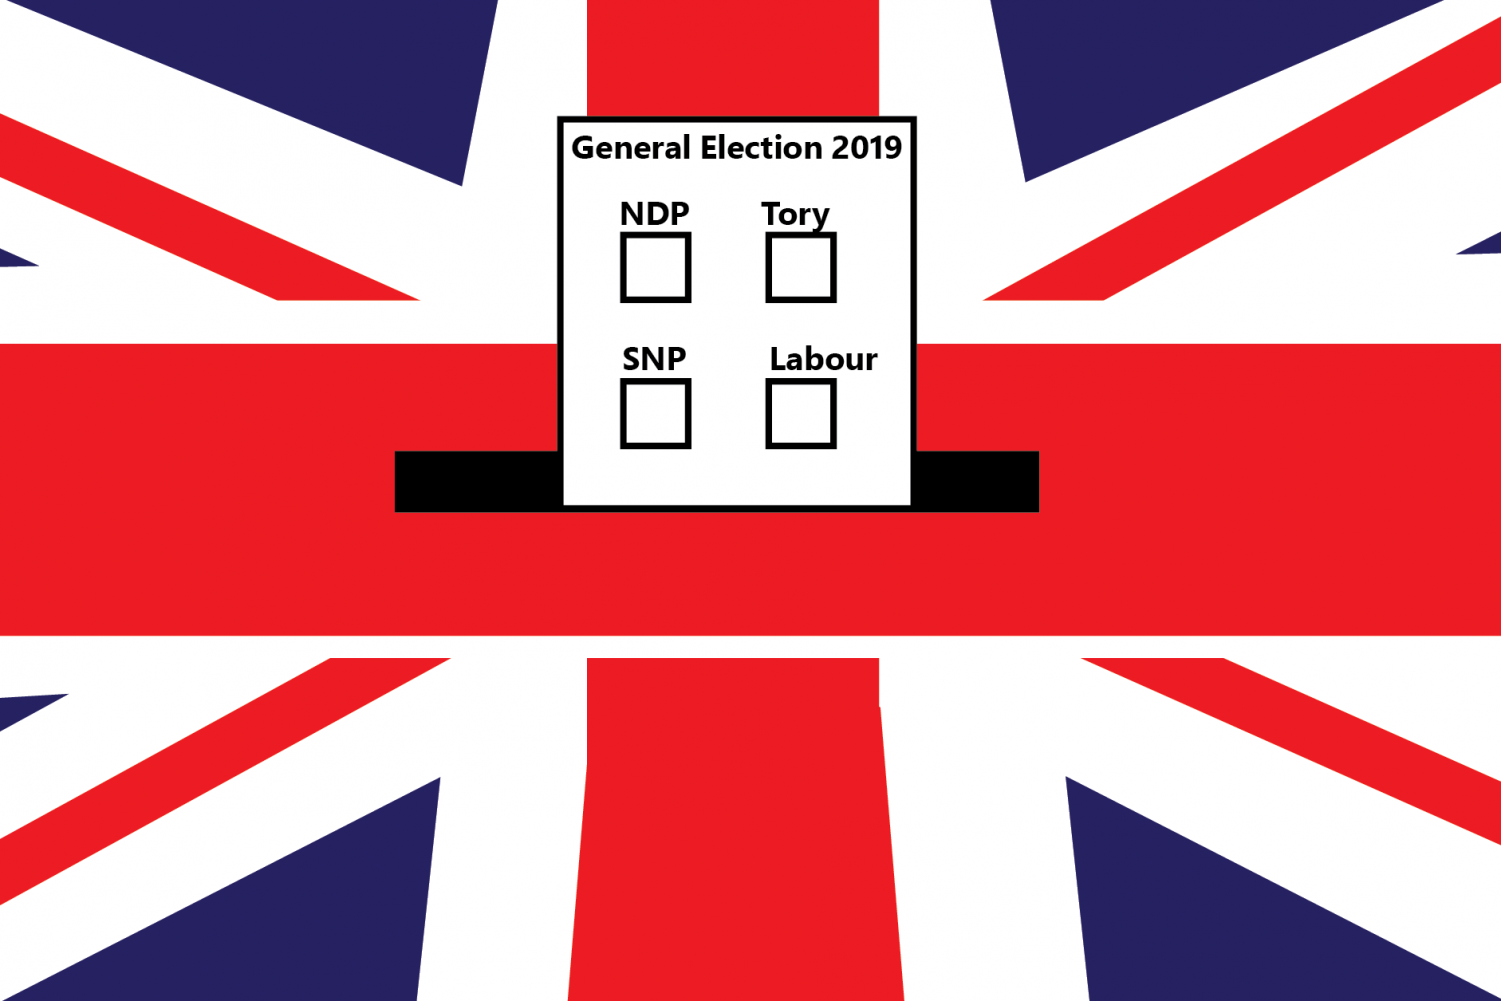 On Dec. 12 the General Election took place in the U.K. Although there is a multi-party system in place, the front runners of the election are in the Conservative party and the Labour party.